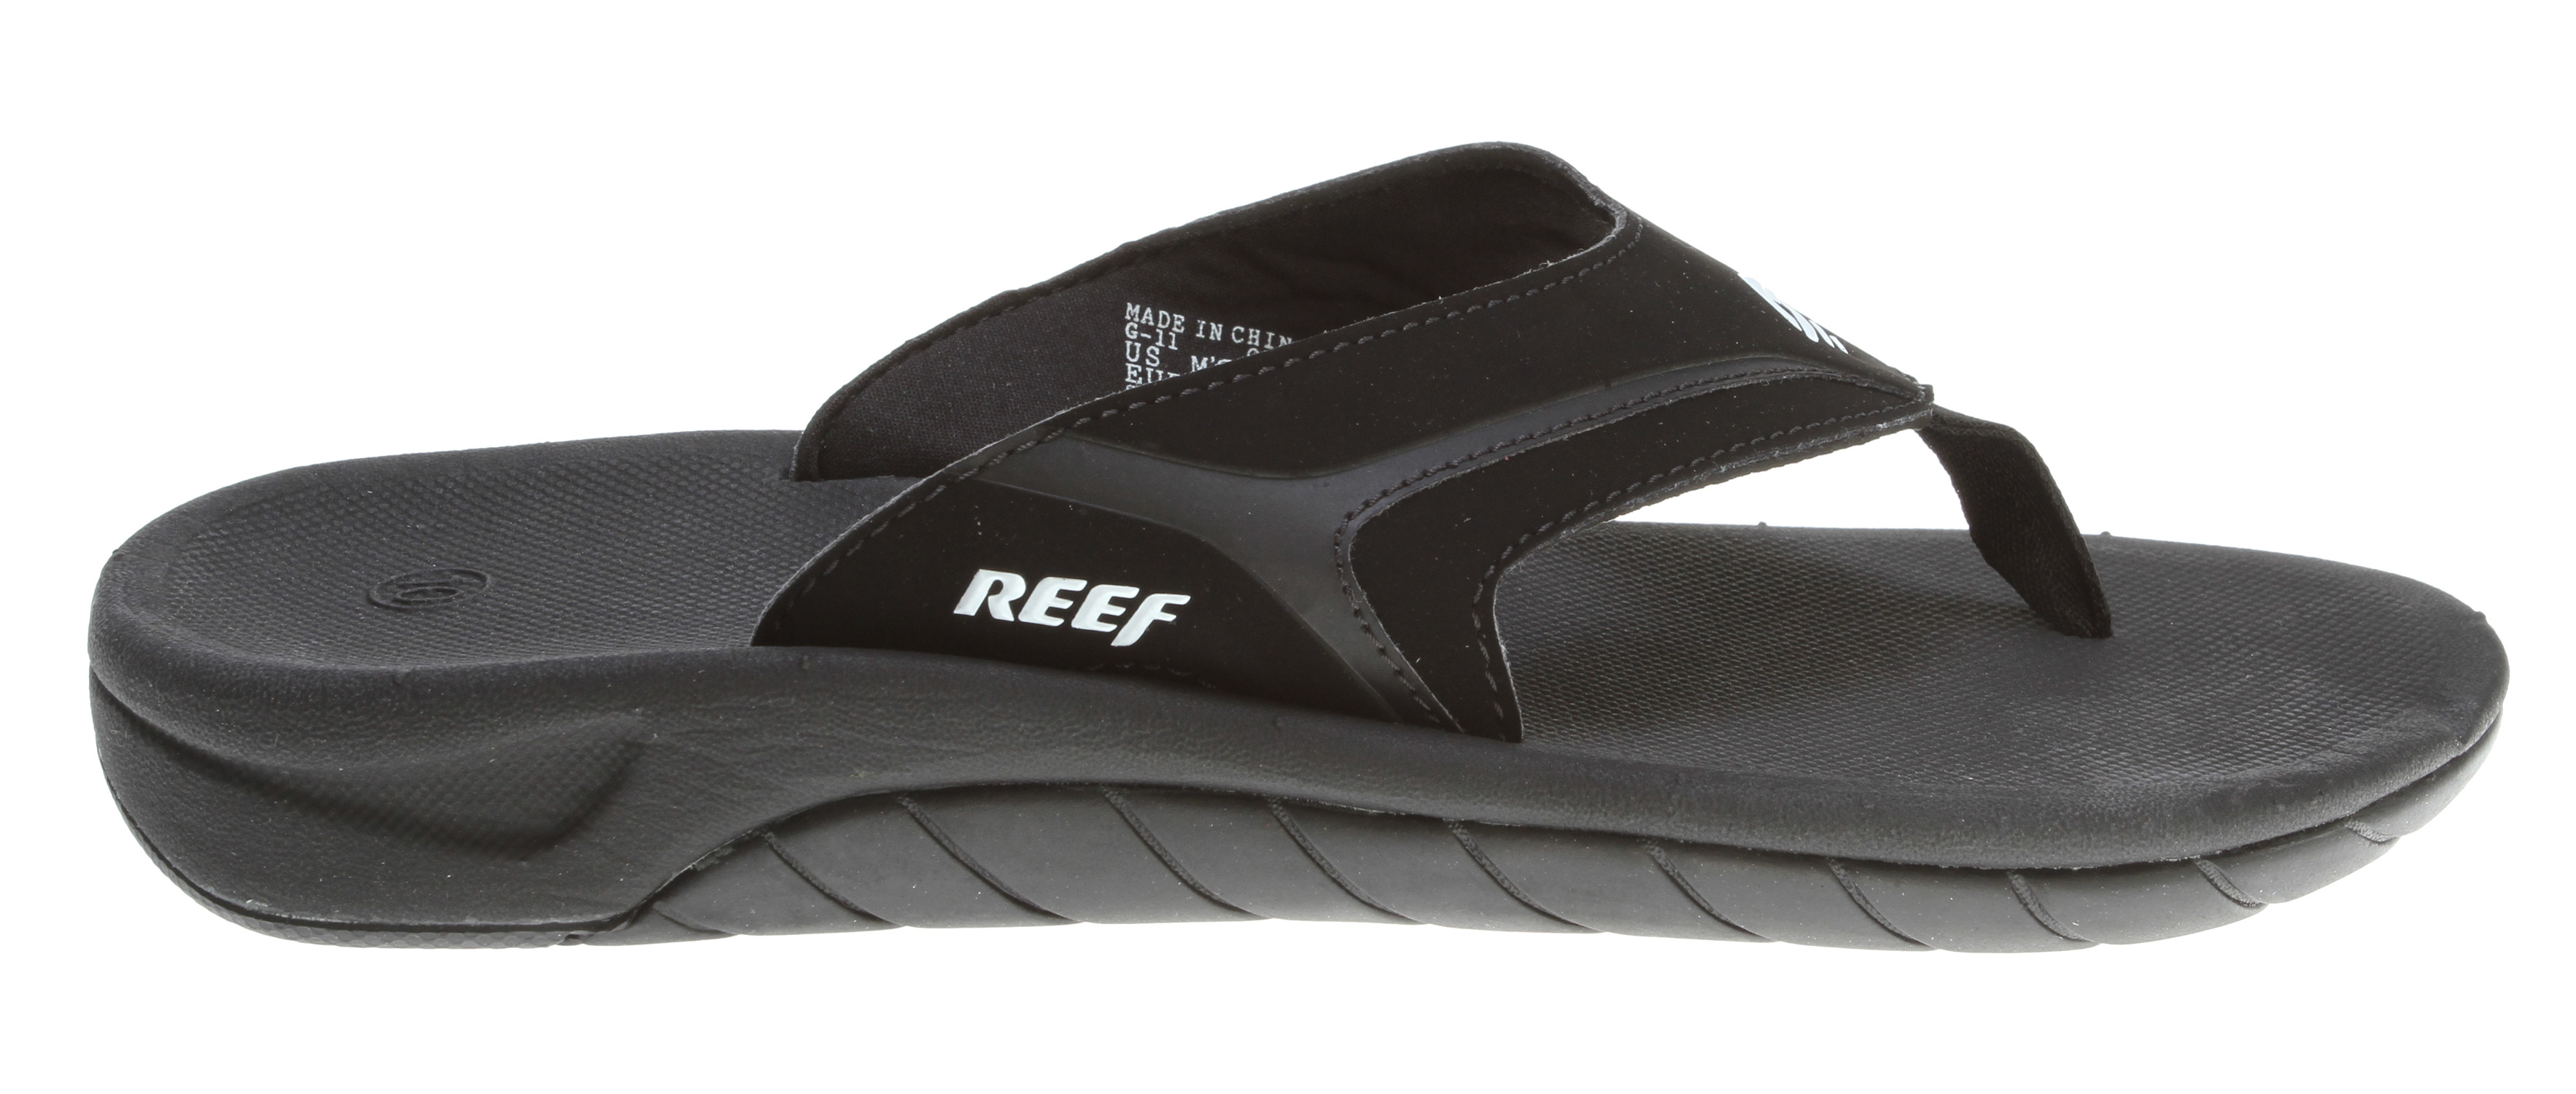 Surf Key Features of the Reef Slap II Sandals: A reef classic updated comfortable, water friendly synthetic nubuck upper with emboss details Soft padded textile lining original slap contoured compression molded eva footbed with anatomical arch support Durable non-marking rubber outsole - $28.95